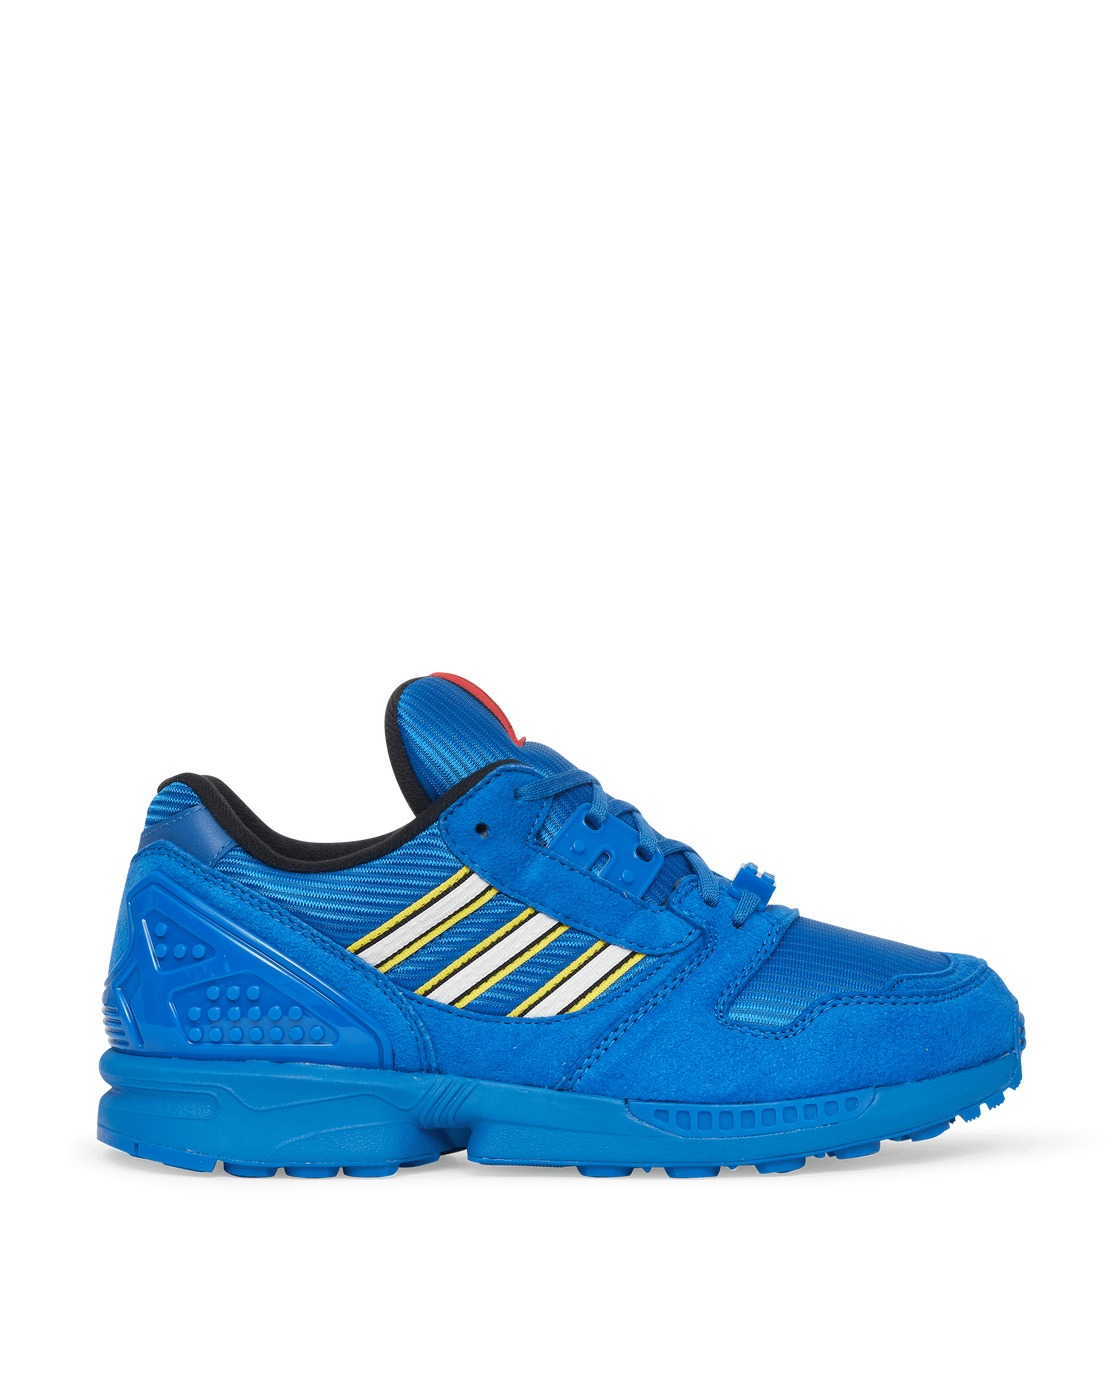 Adidas Originals Lego Zx 8000 Sneakers Bright Royal/Ftwr White